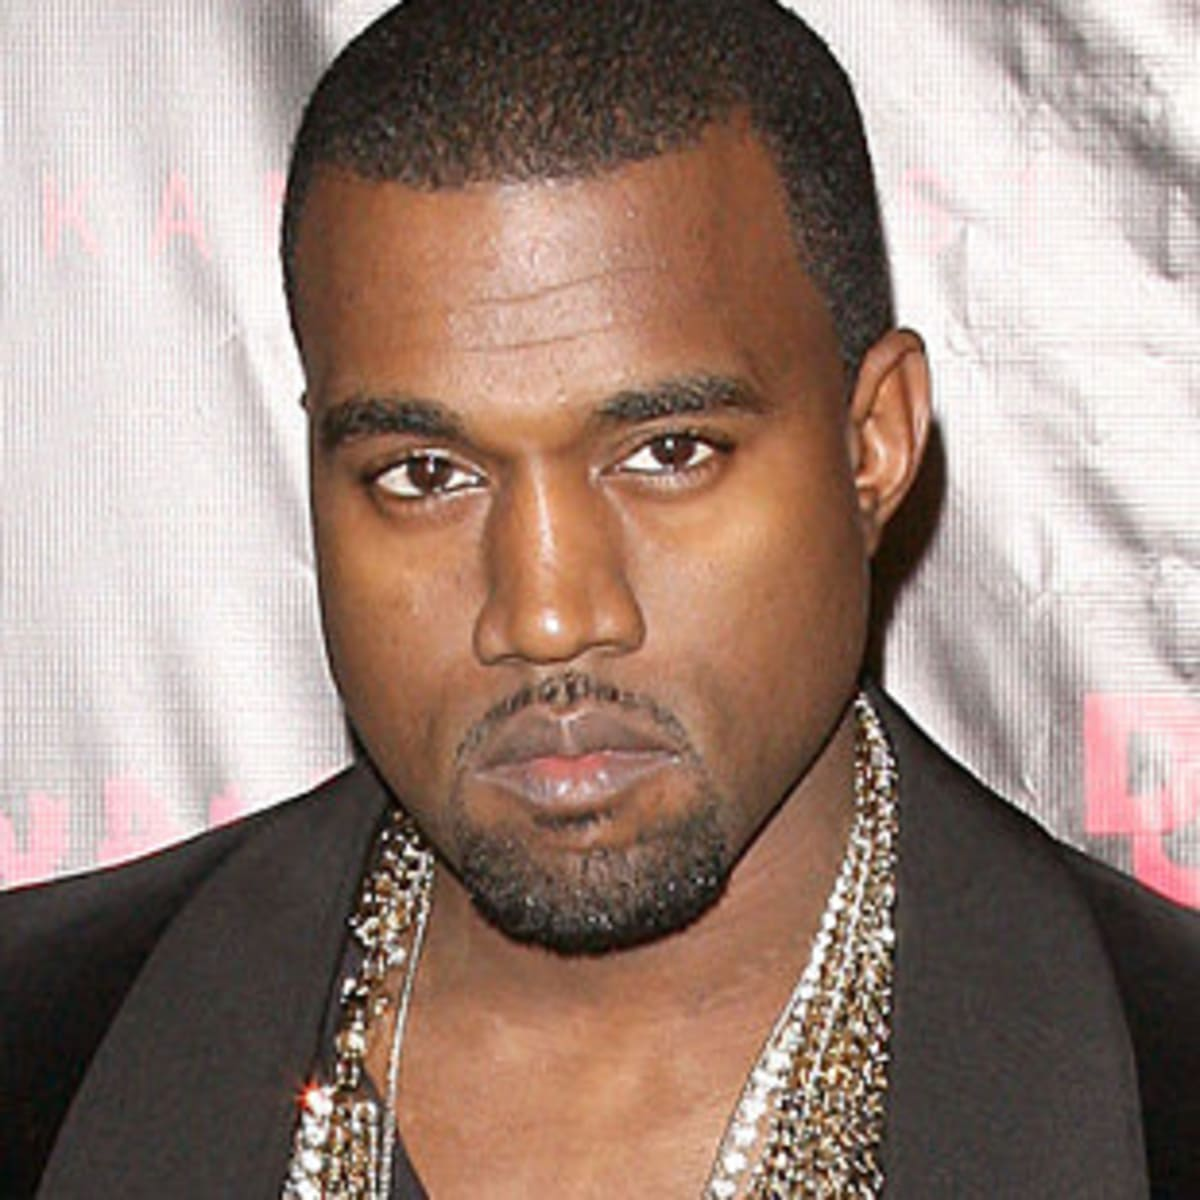 Can taylor swift sue kanye west over famous video